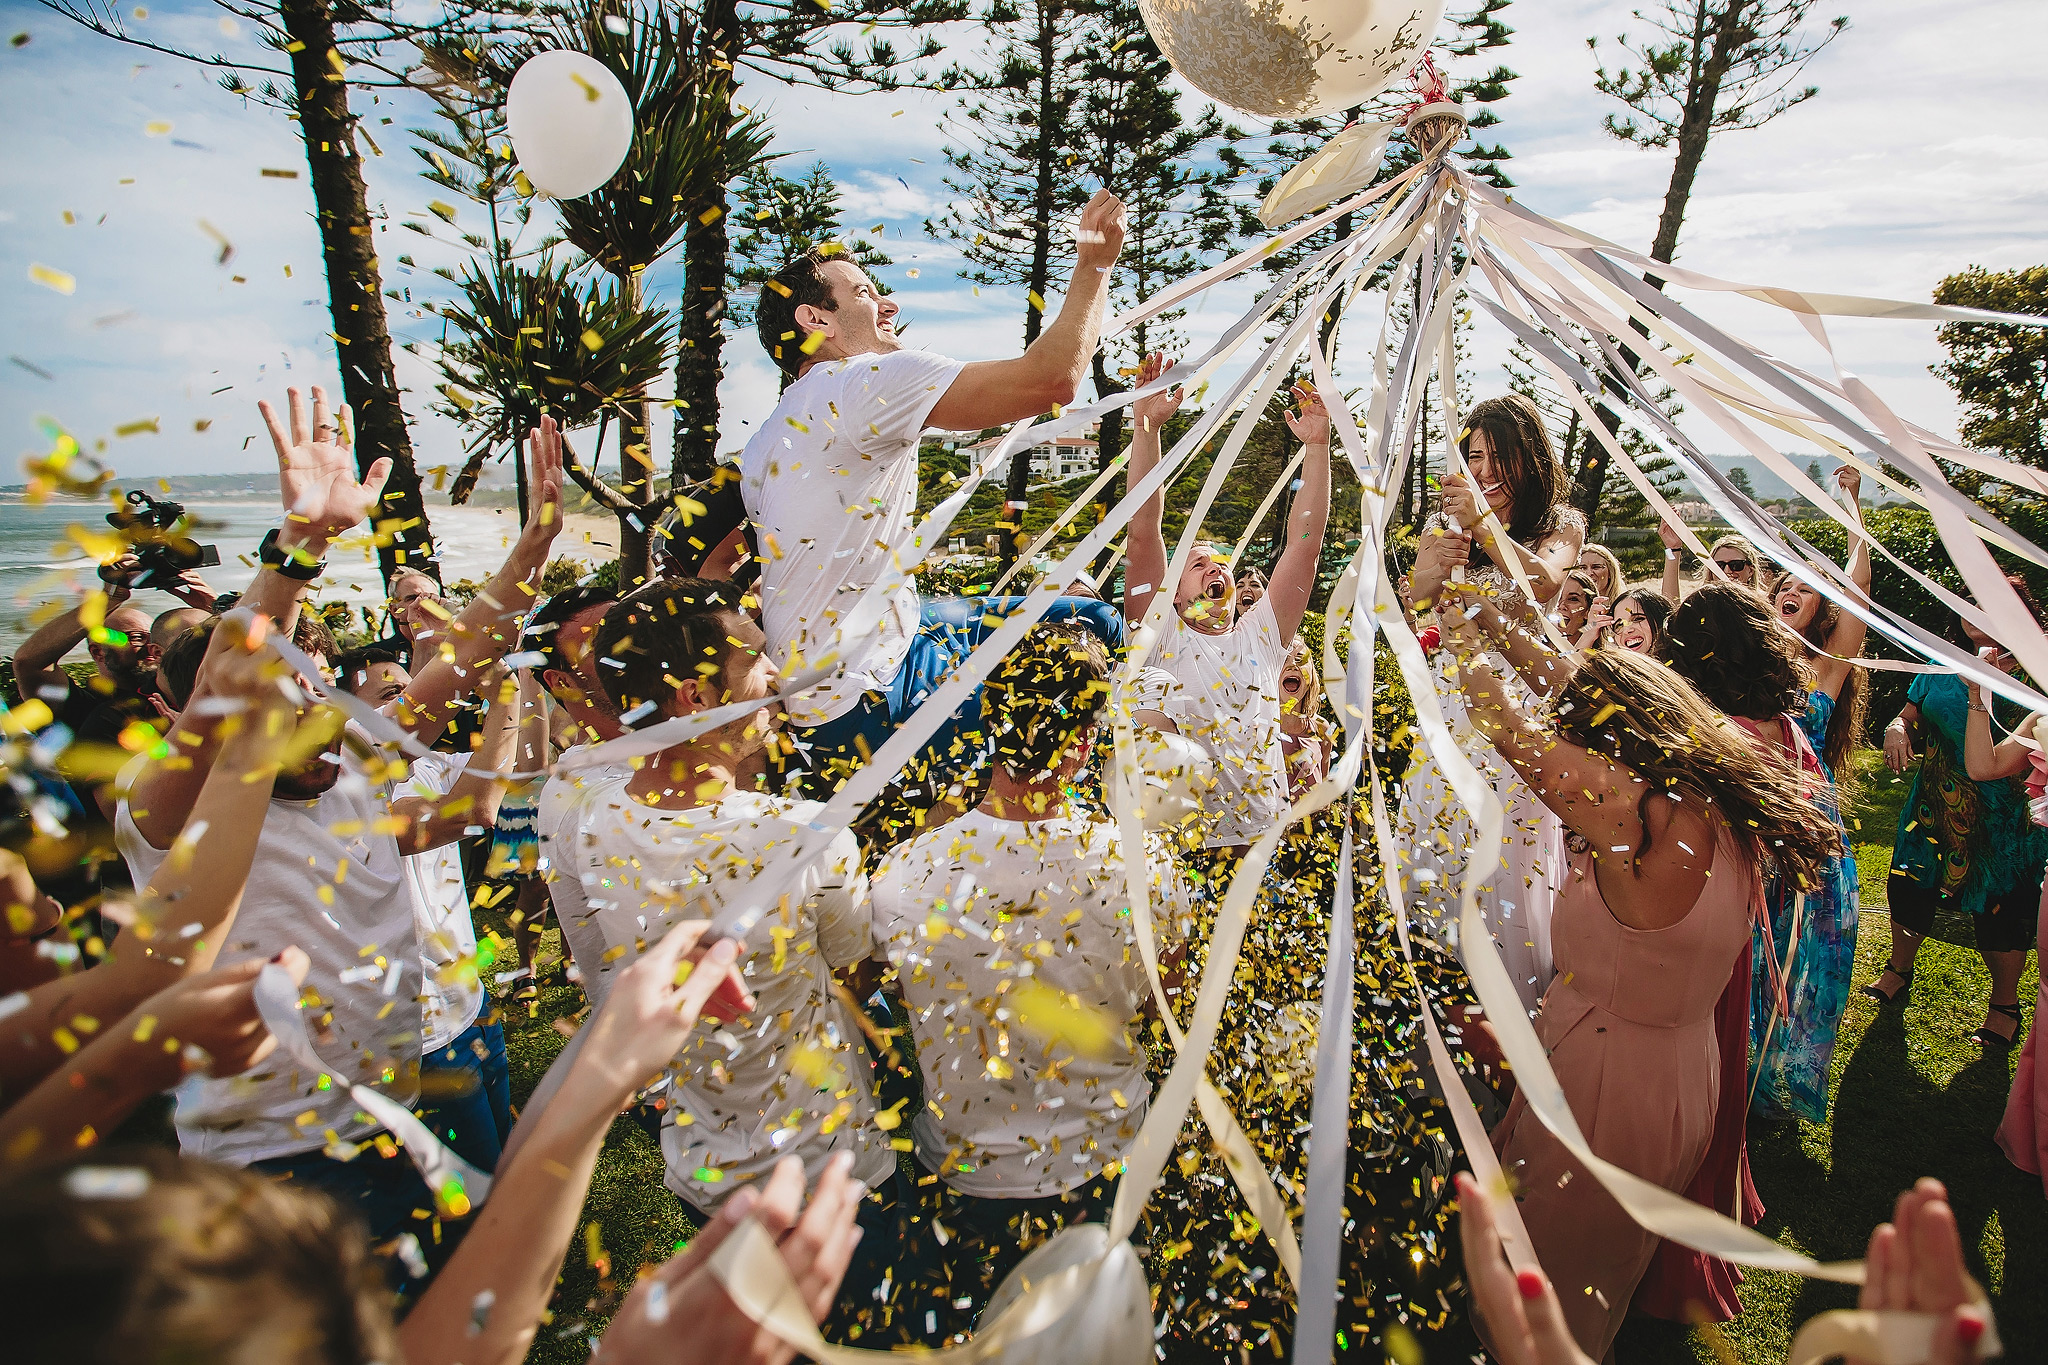 Bride and groom aloft in outdoor play - photo by Ruan Redelinghuys Photography